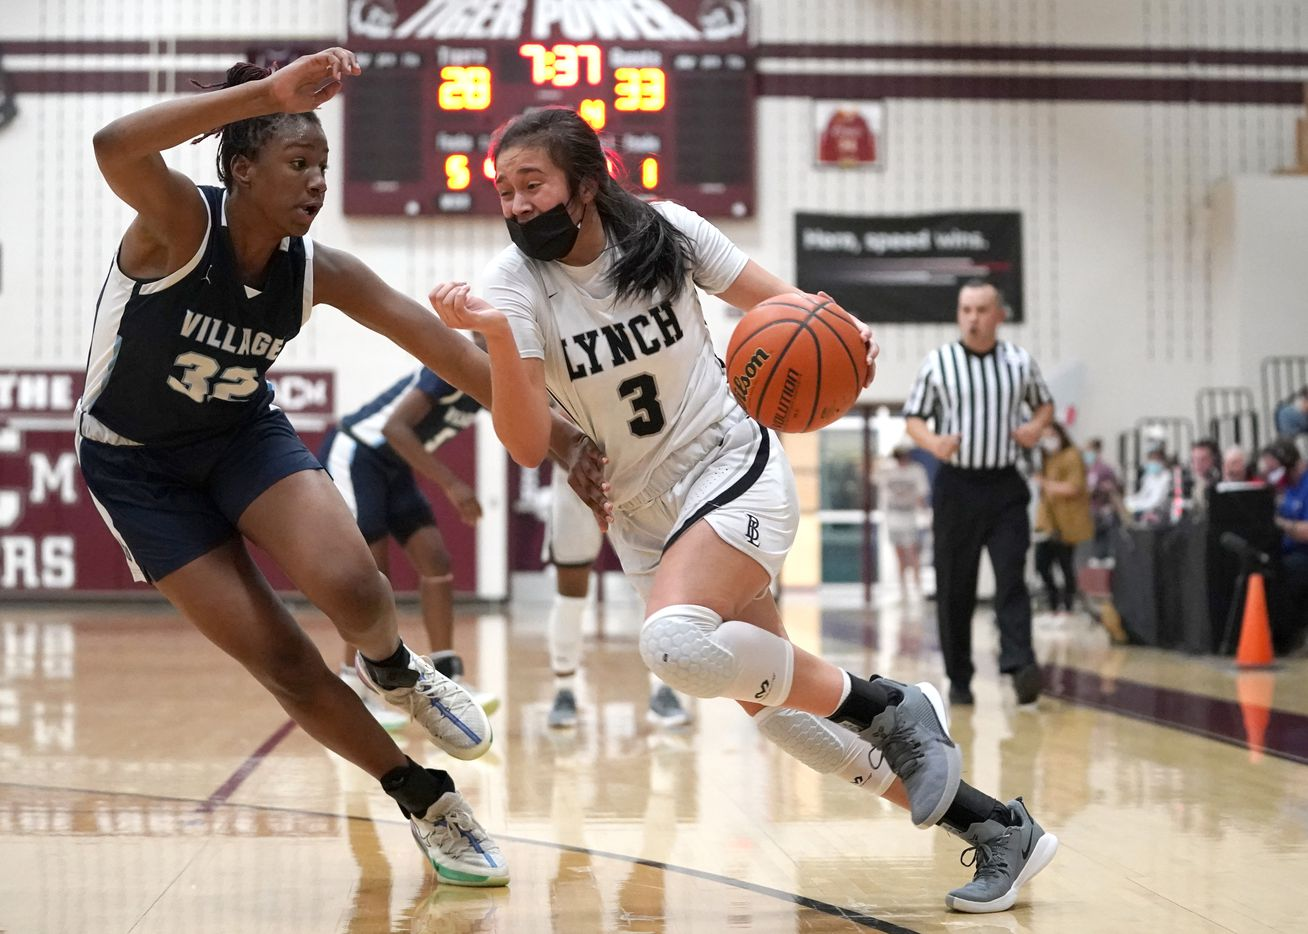 Dallas Bishop Lynch's Natalie Cardenas (3) drives the lane against The Village School's RyLee Grays (32) during the TAPPS 6A girls basketball championship game at A&M Consolidated High School in College Station, Texas on Friday, March 12, 2021. (Sam Craft/Special Contributor)